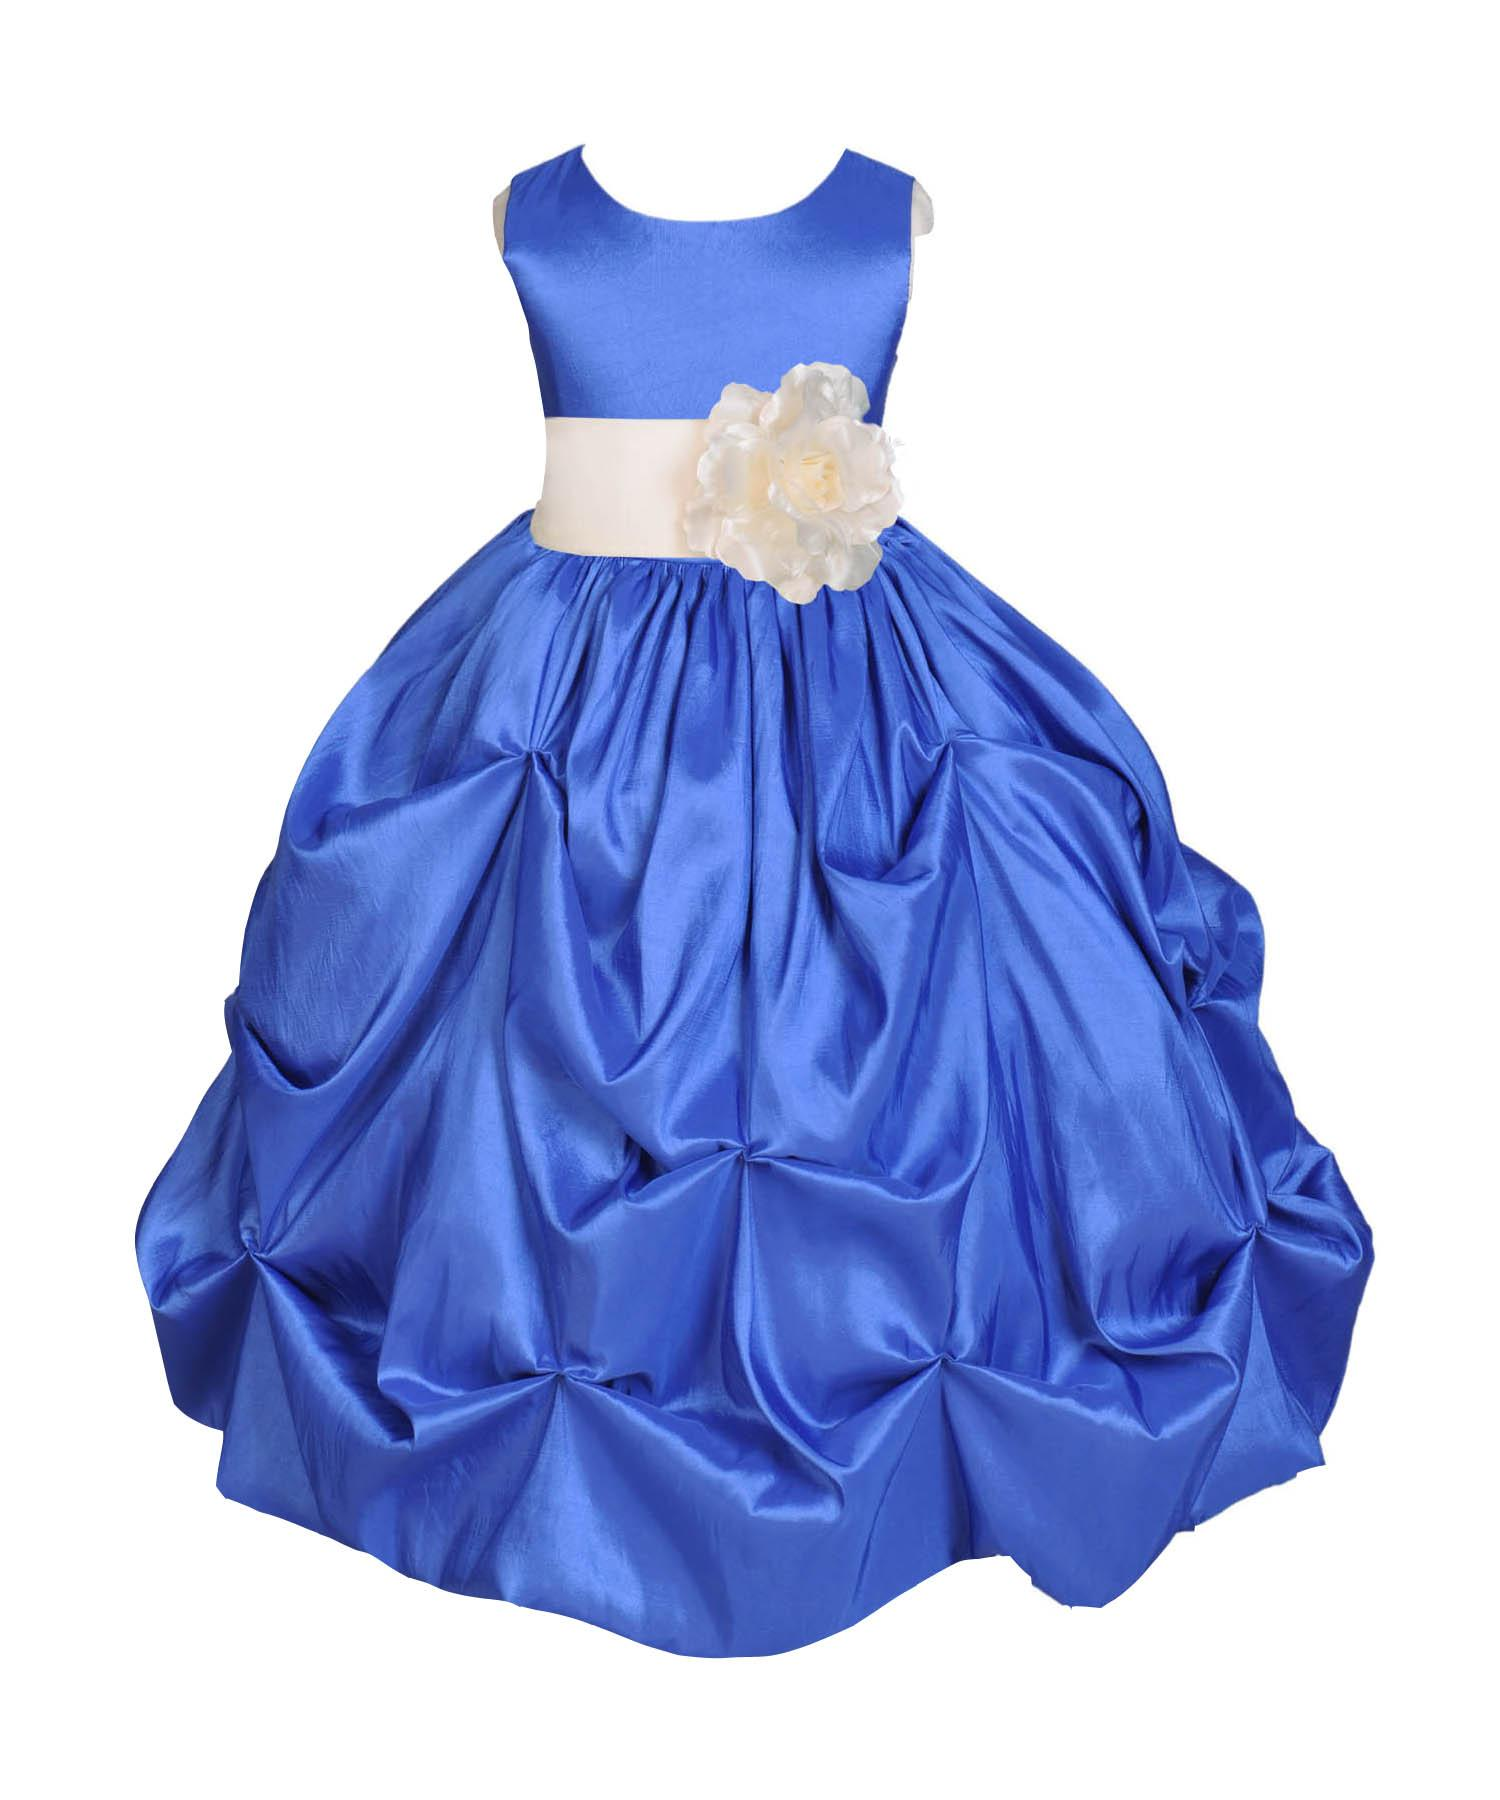 Ekidsbridal Taffeta Bubble Pick-up Royal Blue Flower Girl Dress Weddings Summer Easter Dress Special Occasions Pageant Toddler Birthday Party Holiday Bridal Baptism Junior Bridesmaid Communion 301S